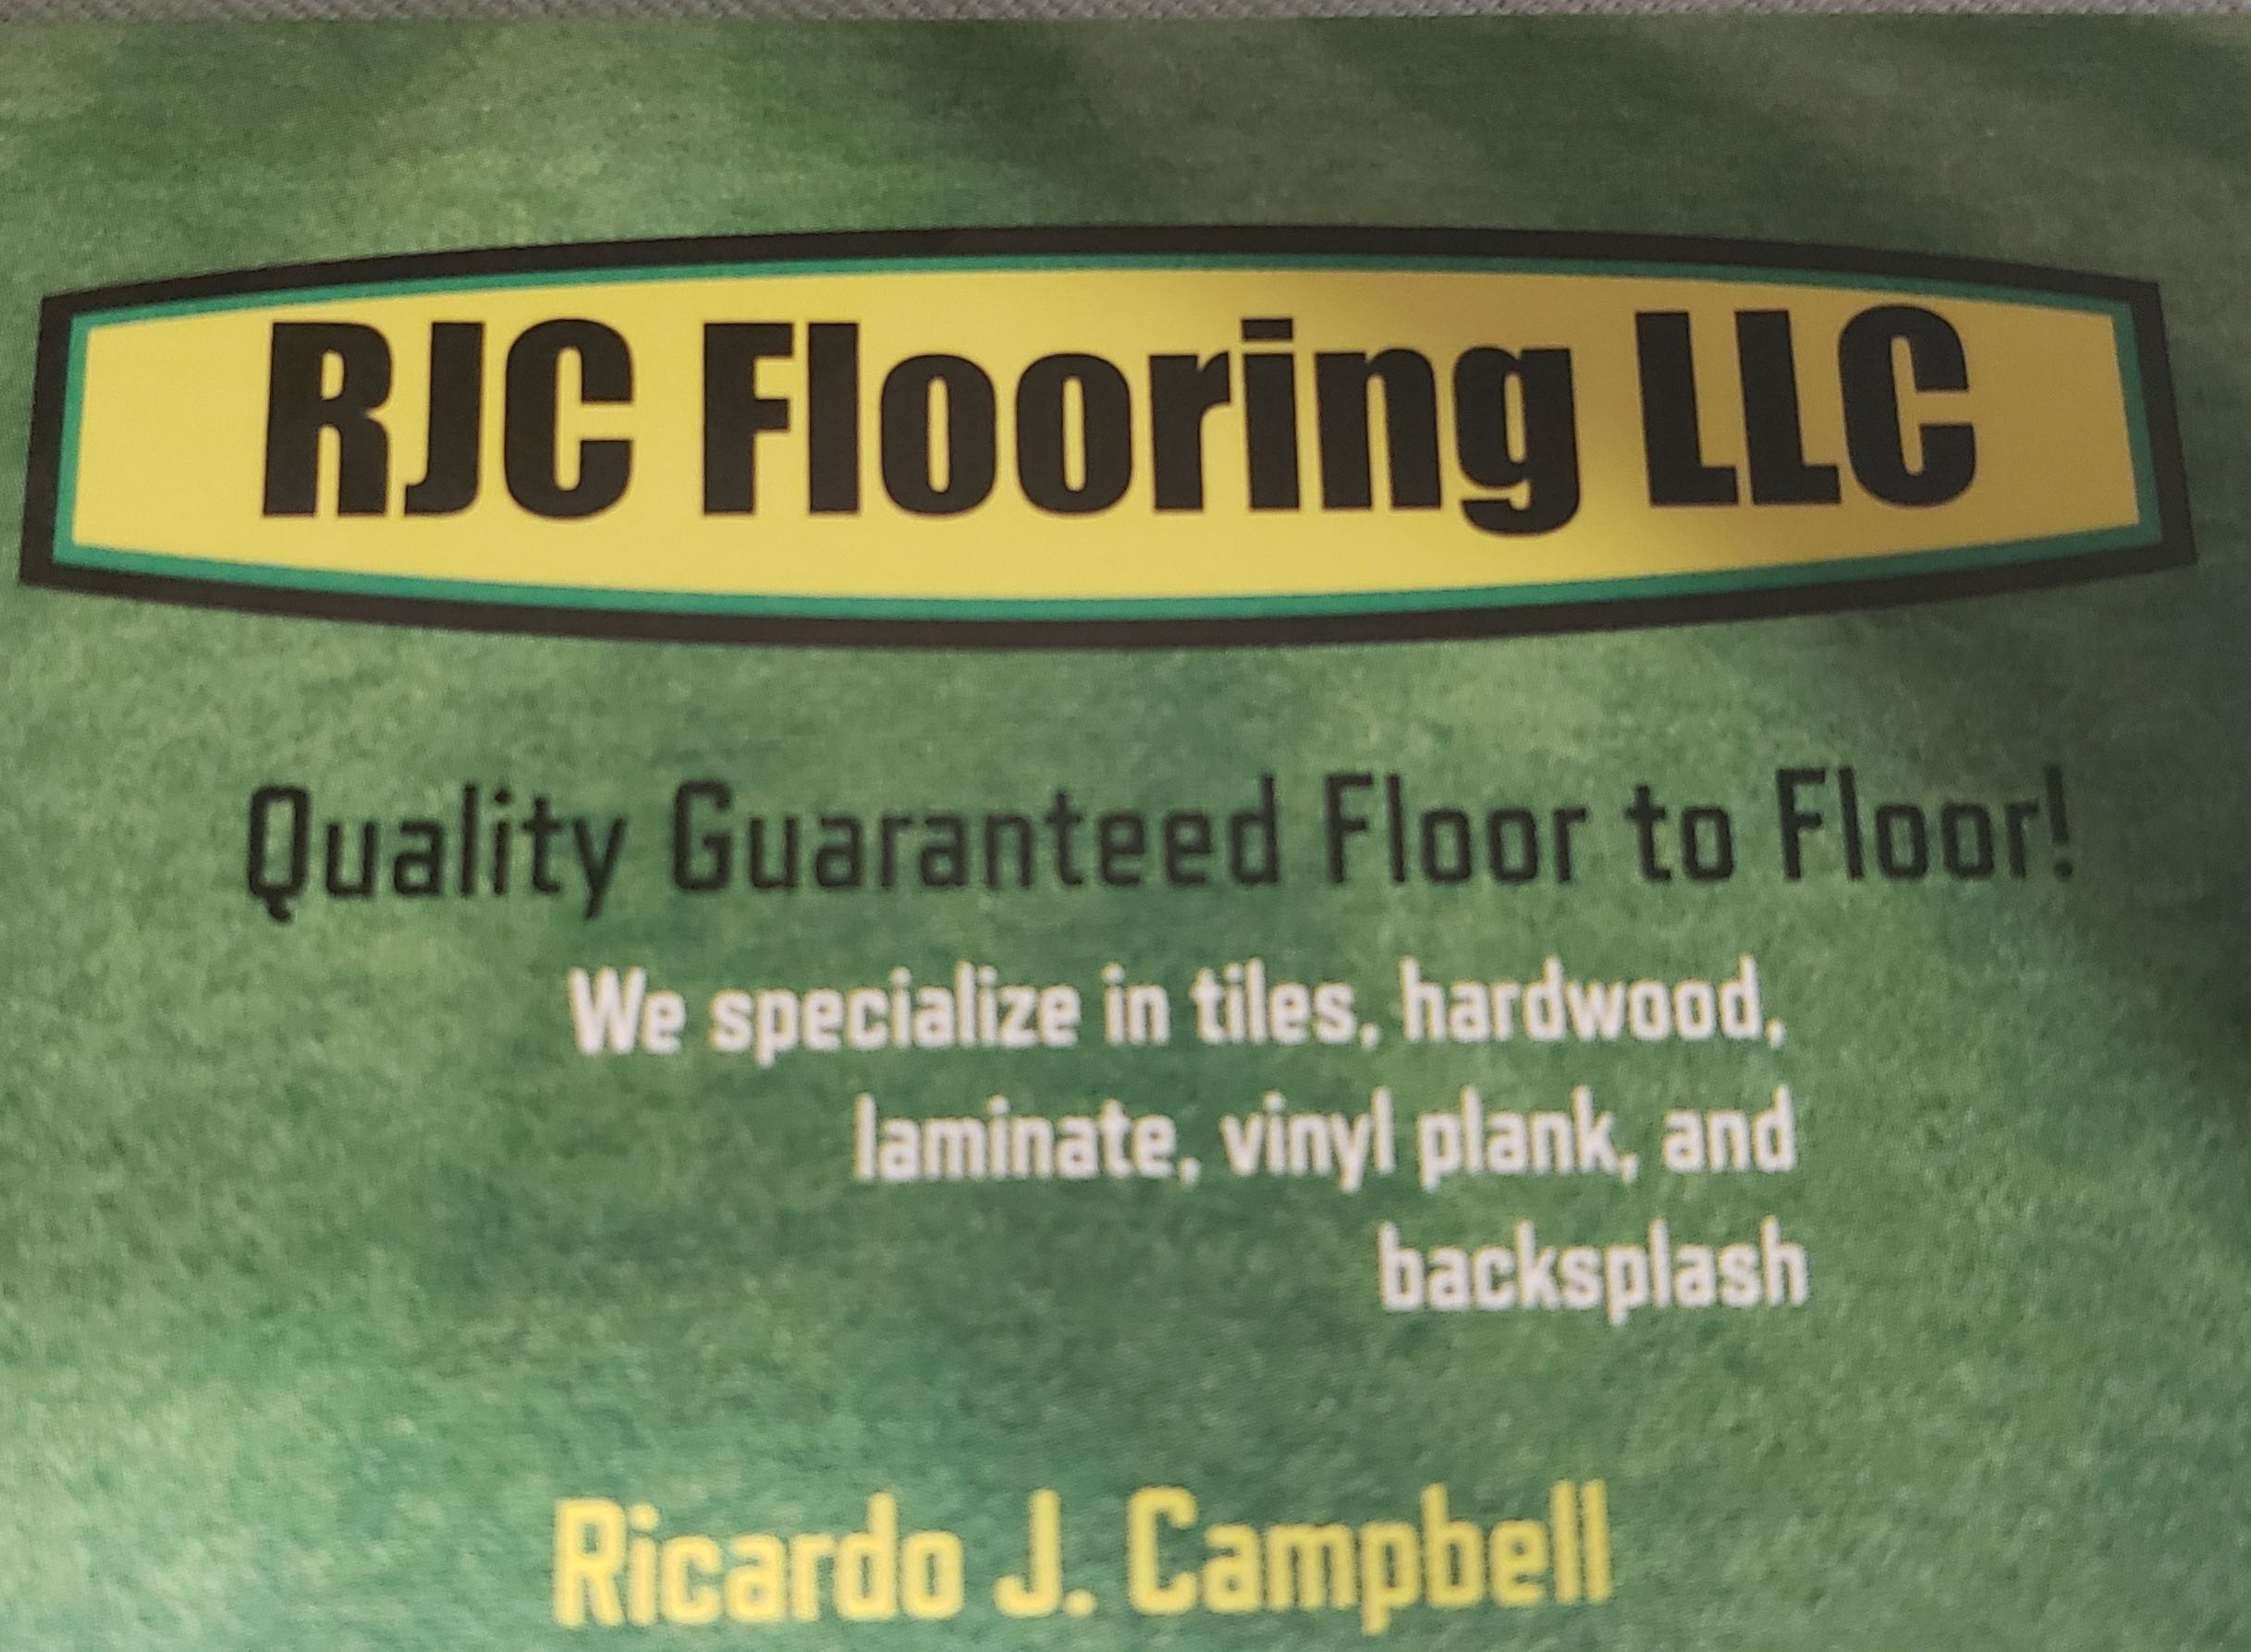 FREE BACKSPLASH INSTALL   Looking to upgrade your kitchen or bath?   Get free installation of a backsplash up to 40 square feet. This is for labor only. The buyer would purchase their own materials.  DONOR: RJC Flooring LLC VALUE: $600